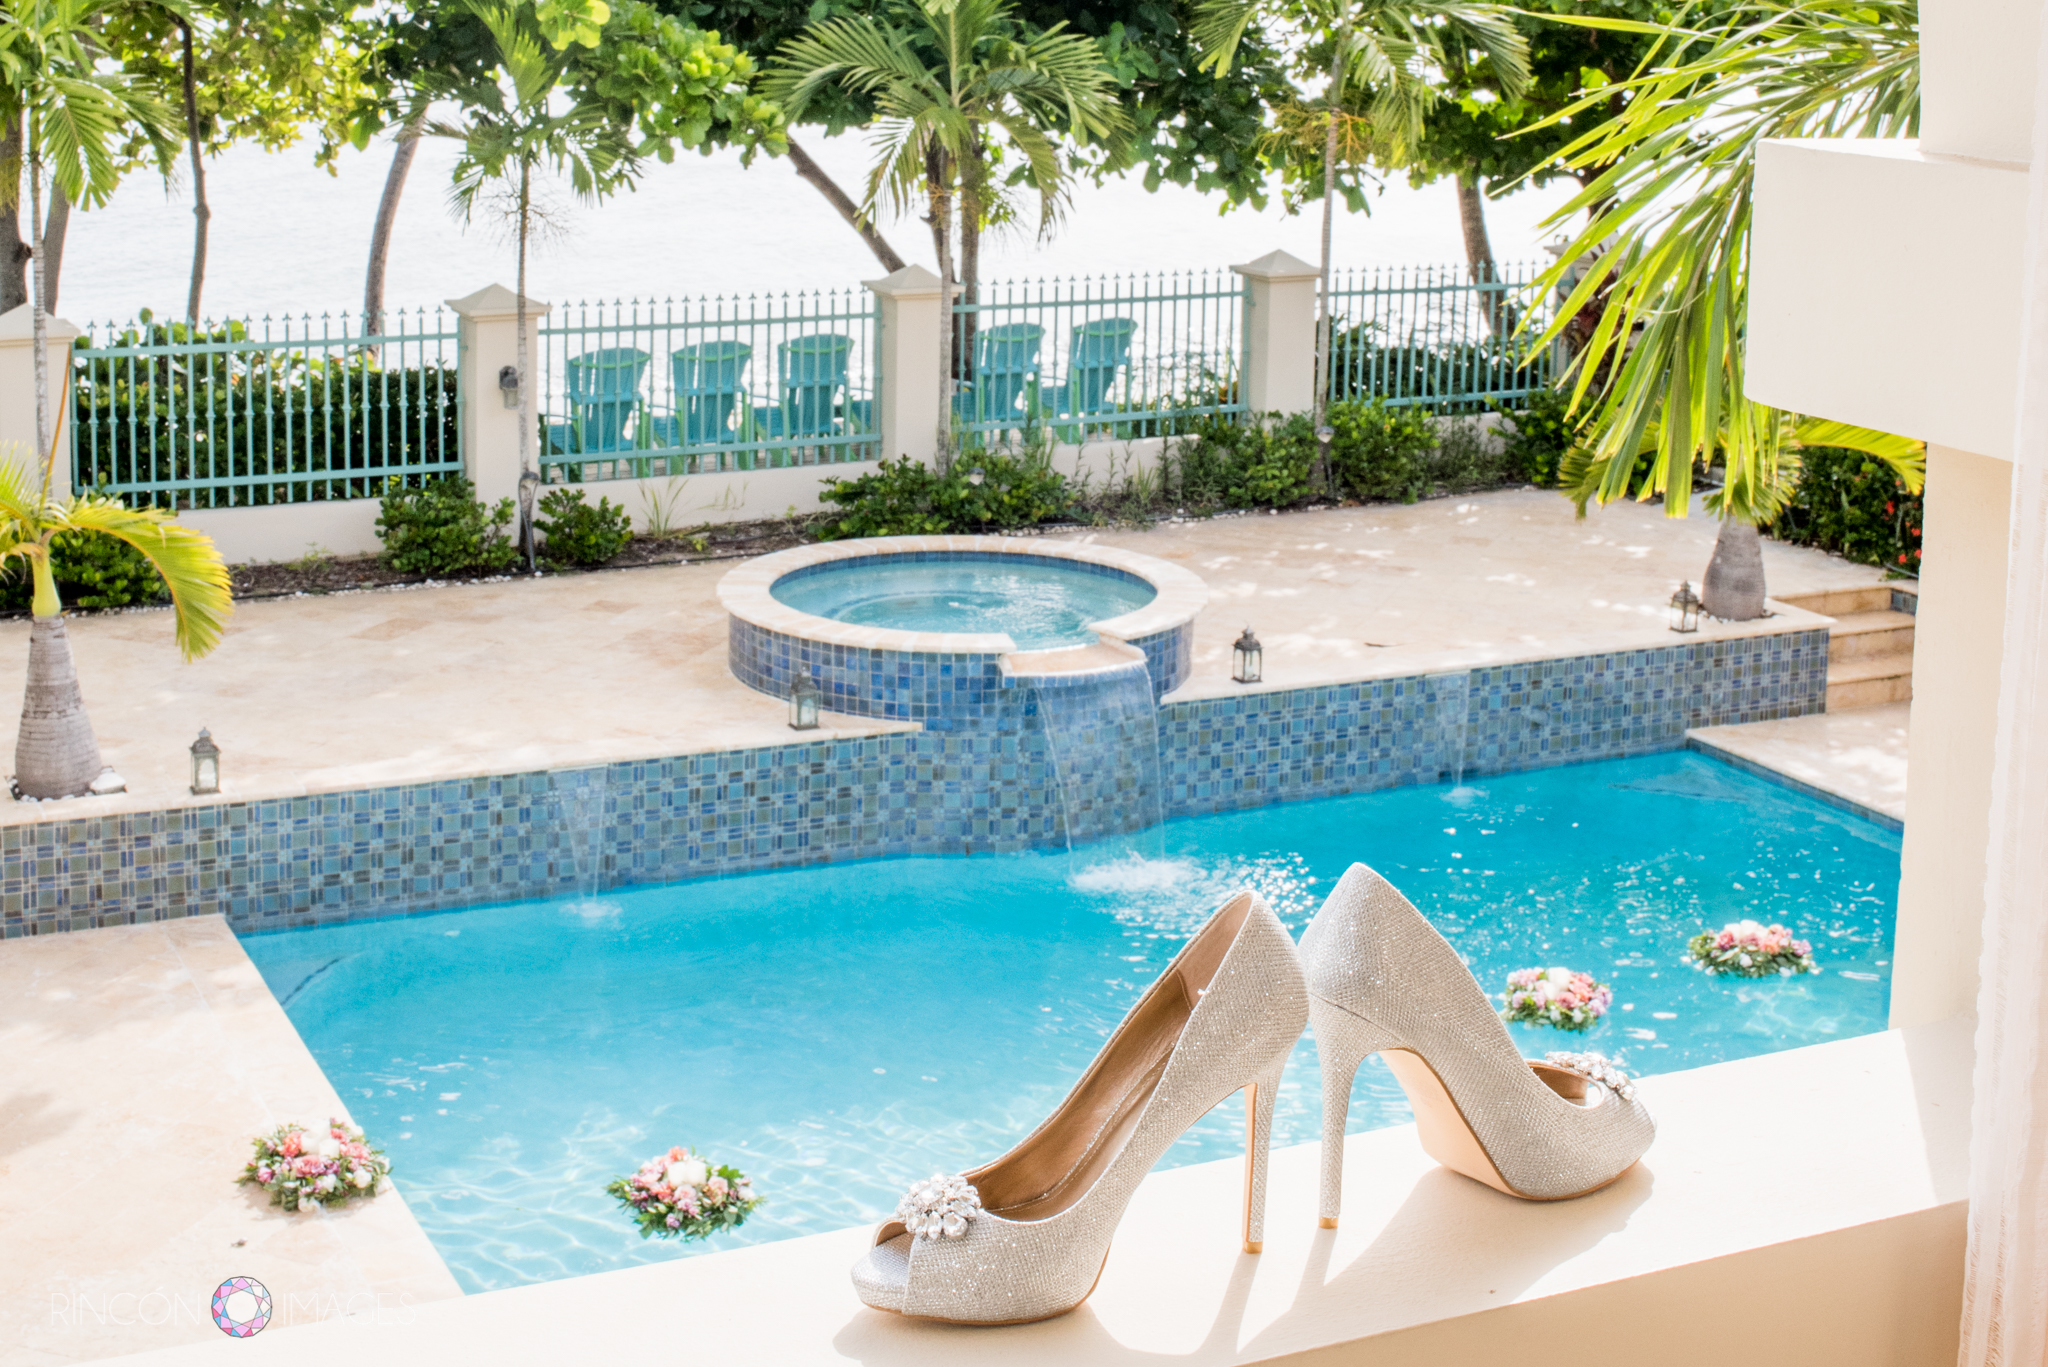 The brides silver wedding shoes on the balcony ledge with the swimming pool and palm trees in the background.